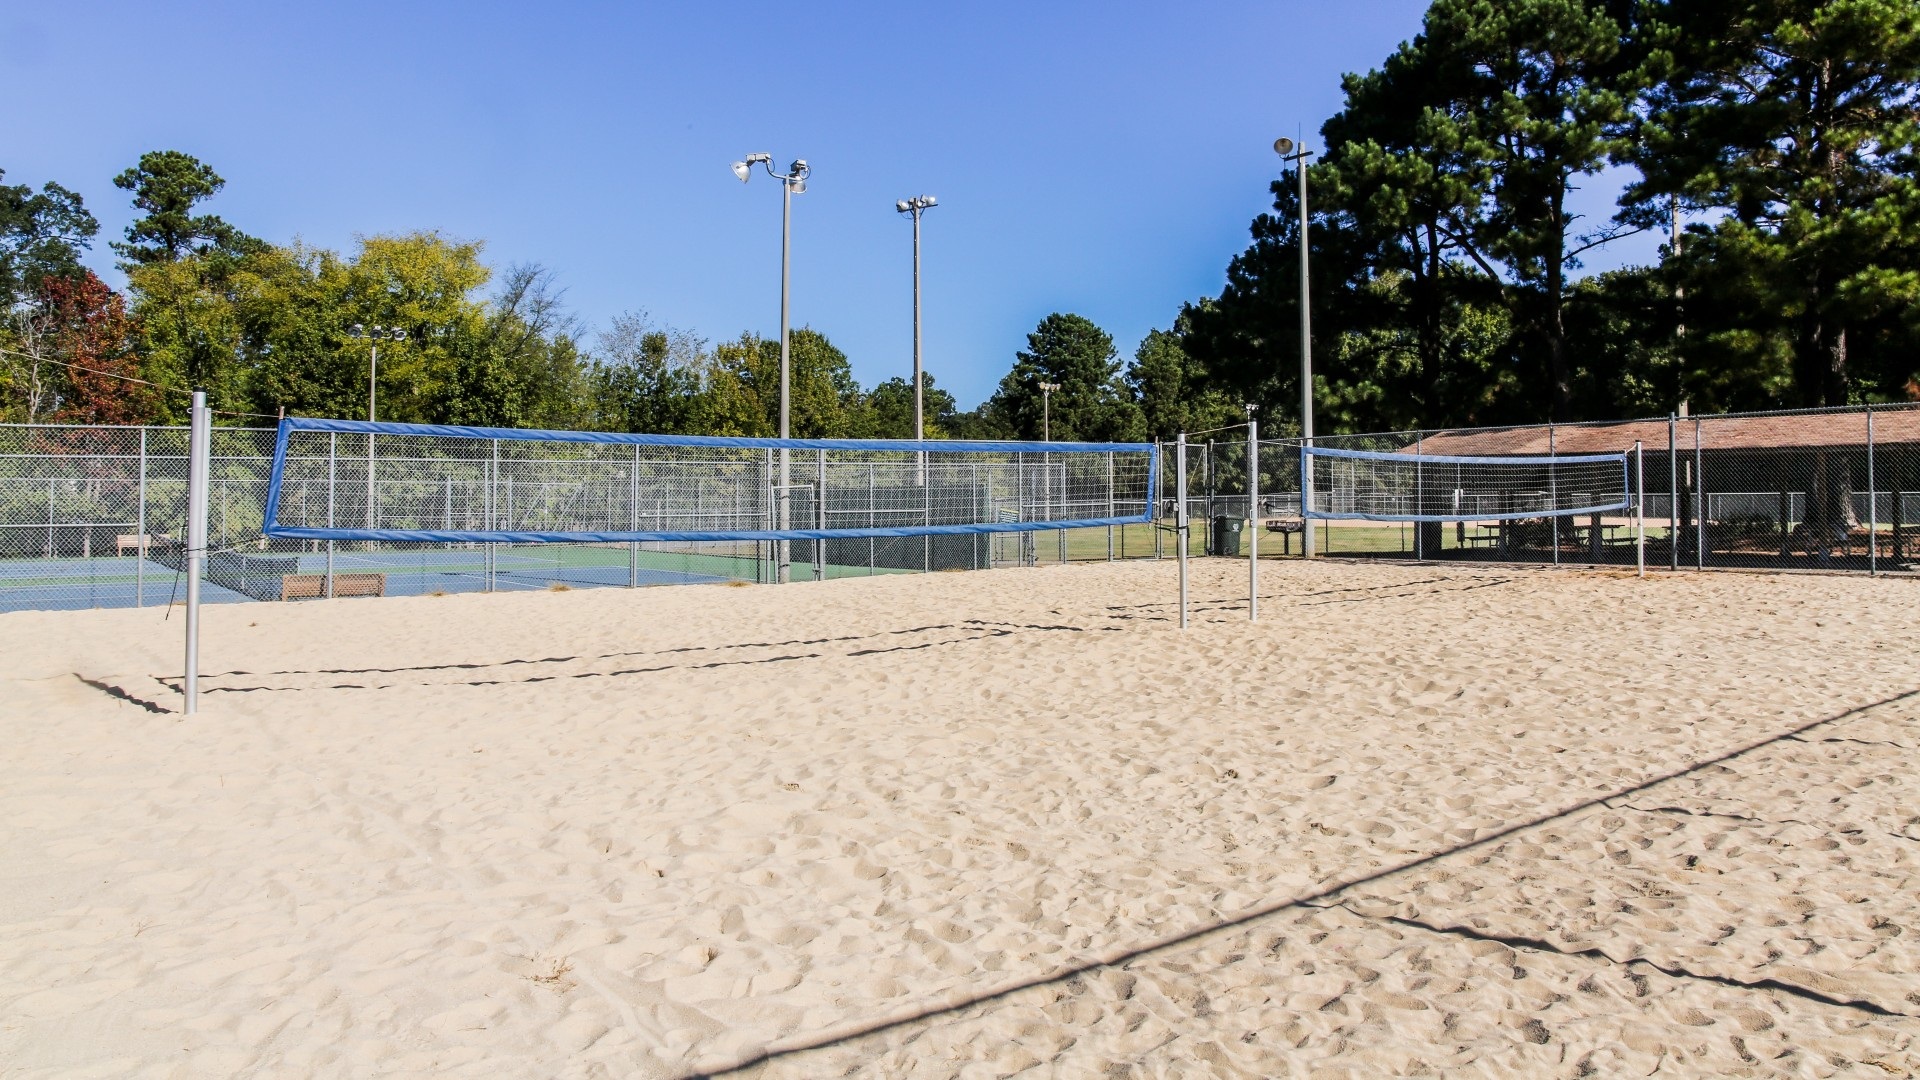 Two of the outdoor sand volleyball courts with lightning at Green Road Park